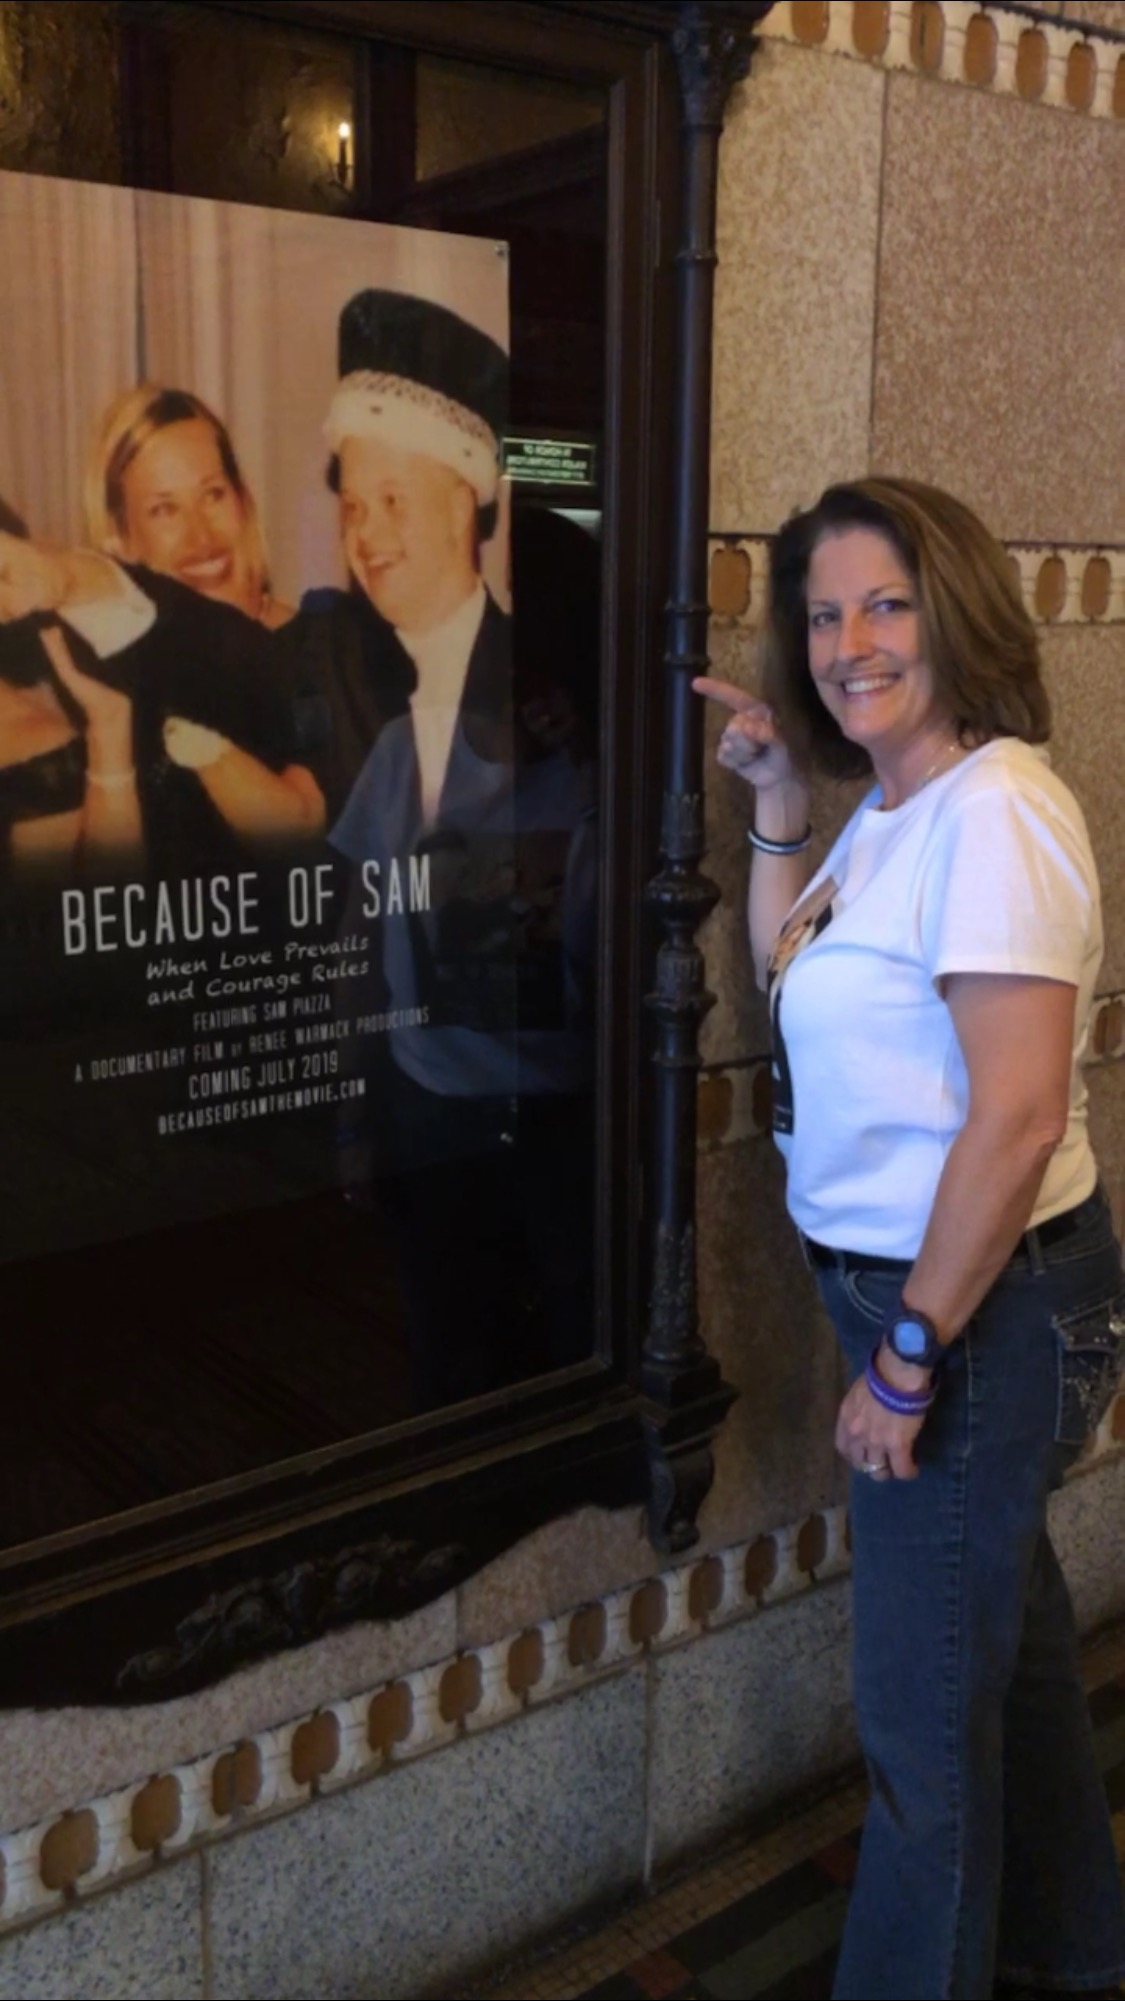 Renee Warmack in front of Tampa Theatre large Movie poster